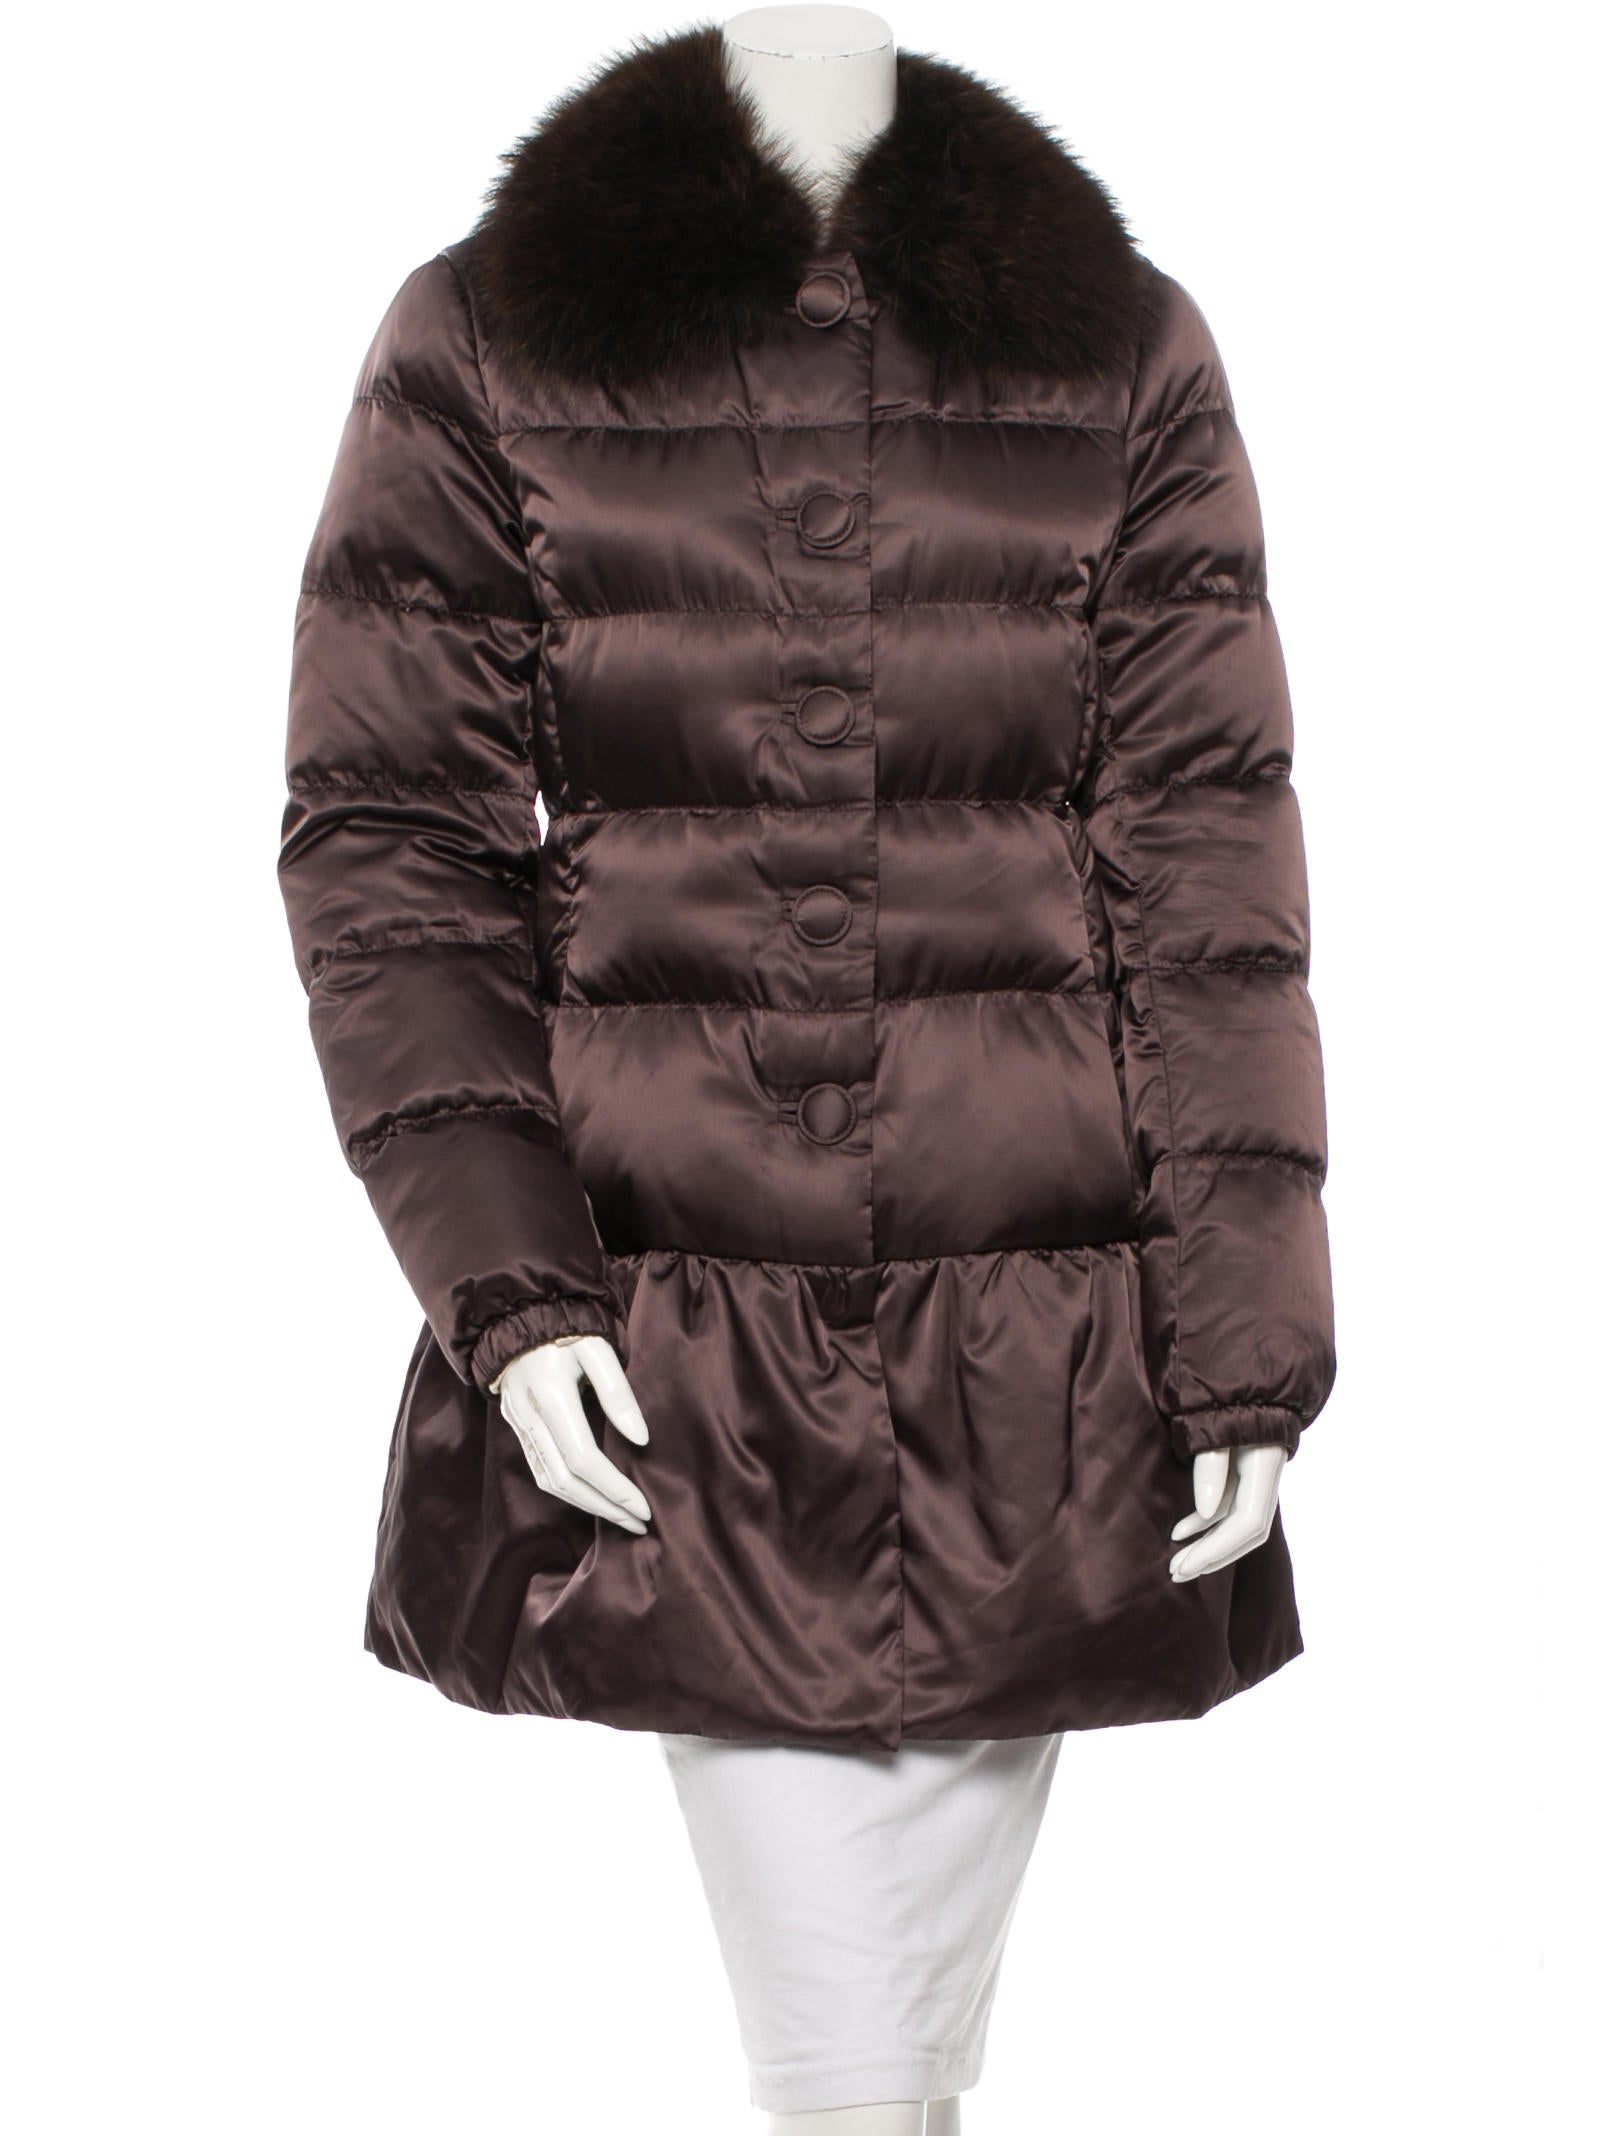 Find a great selection of down & puffer jackets for women at ciproprescription.ga Shop from top brands like Patagonia, The North Face, Canada Goose & more. Free shipping & returns.